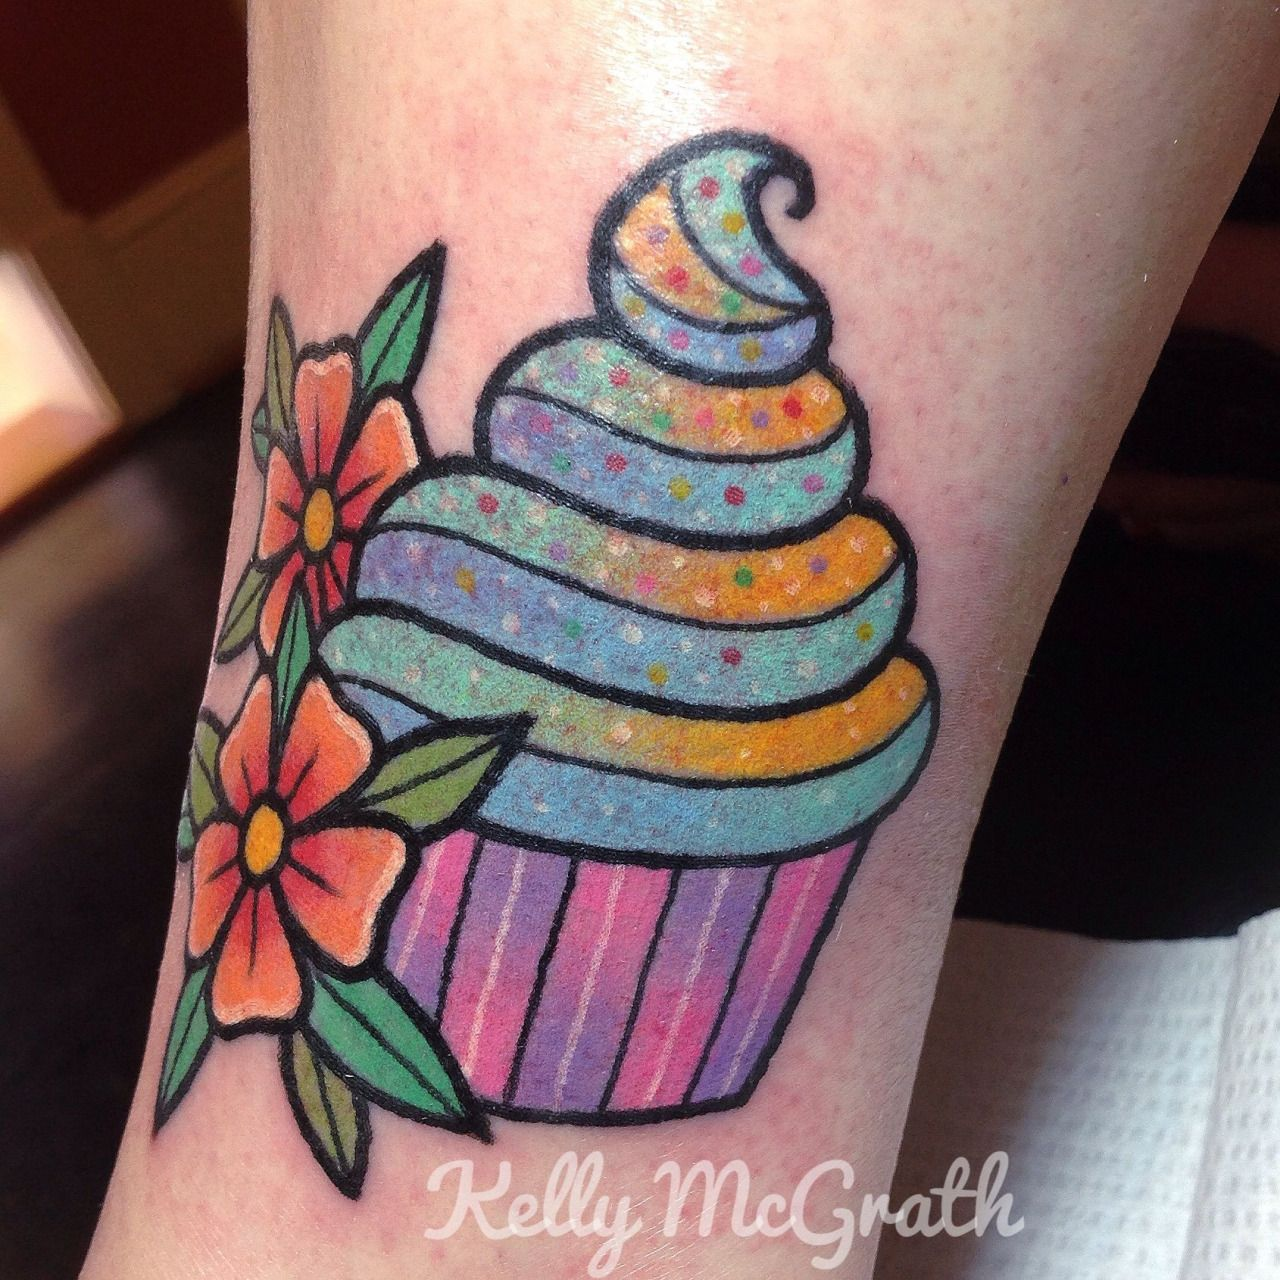 Done By Kelly Mcgrath At Art Alive Tattoo In Archdale Ideas And Designs